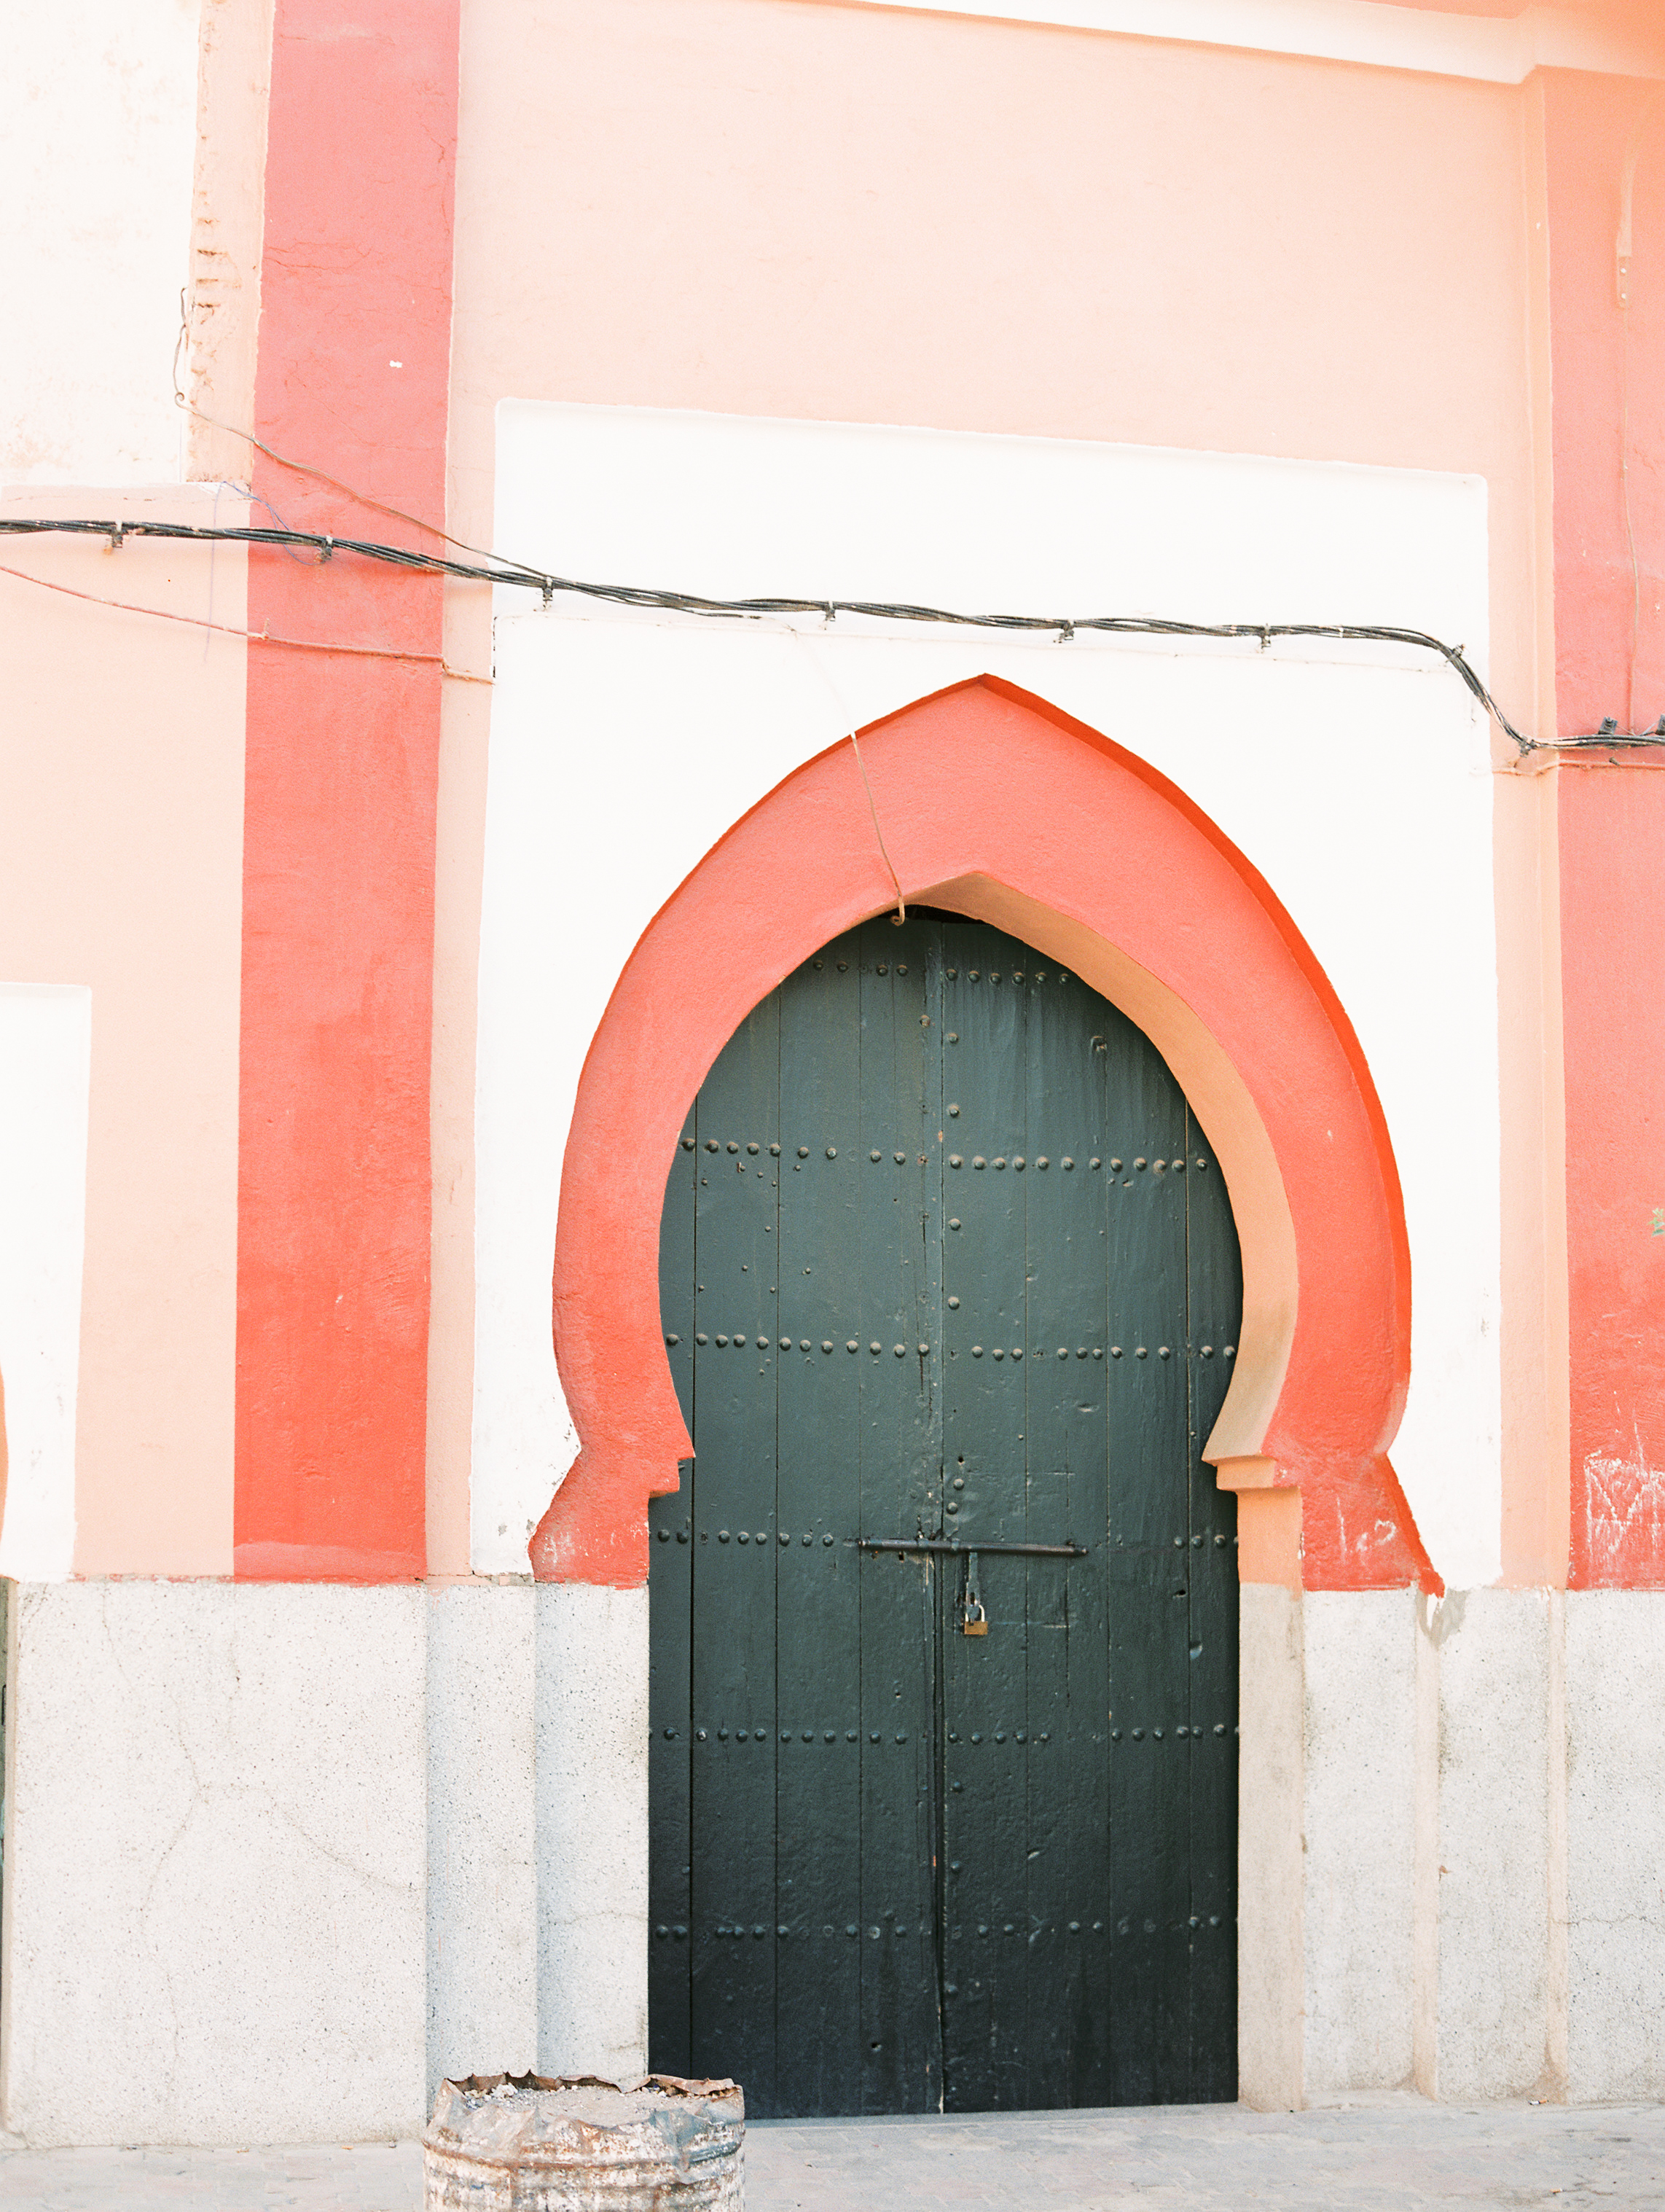 Morocco Streets - Sam Areman Photo-3